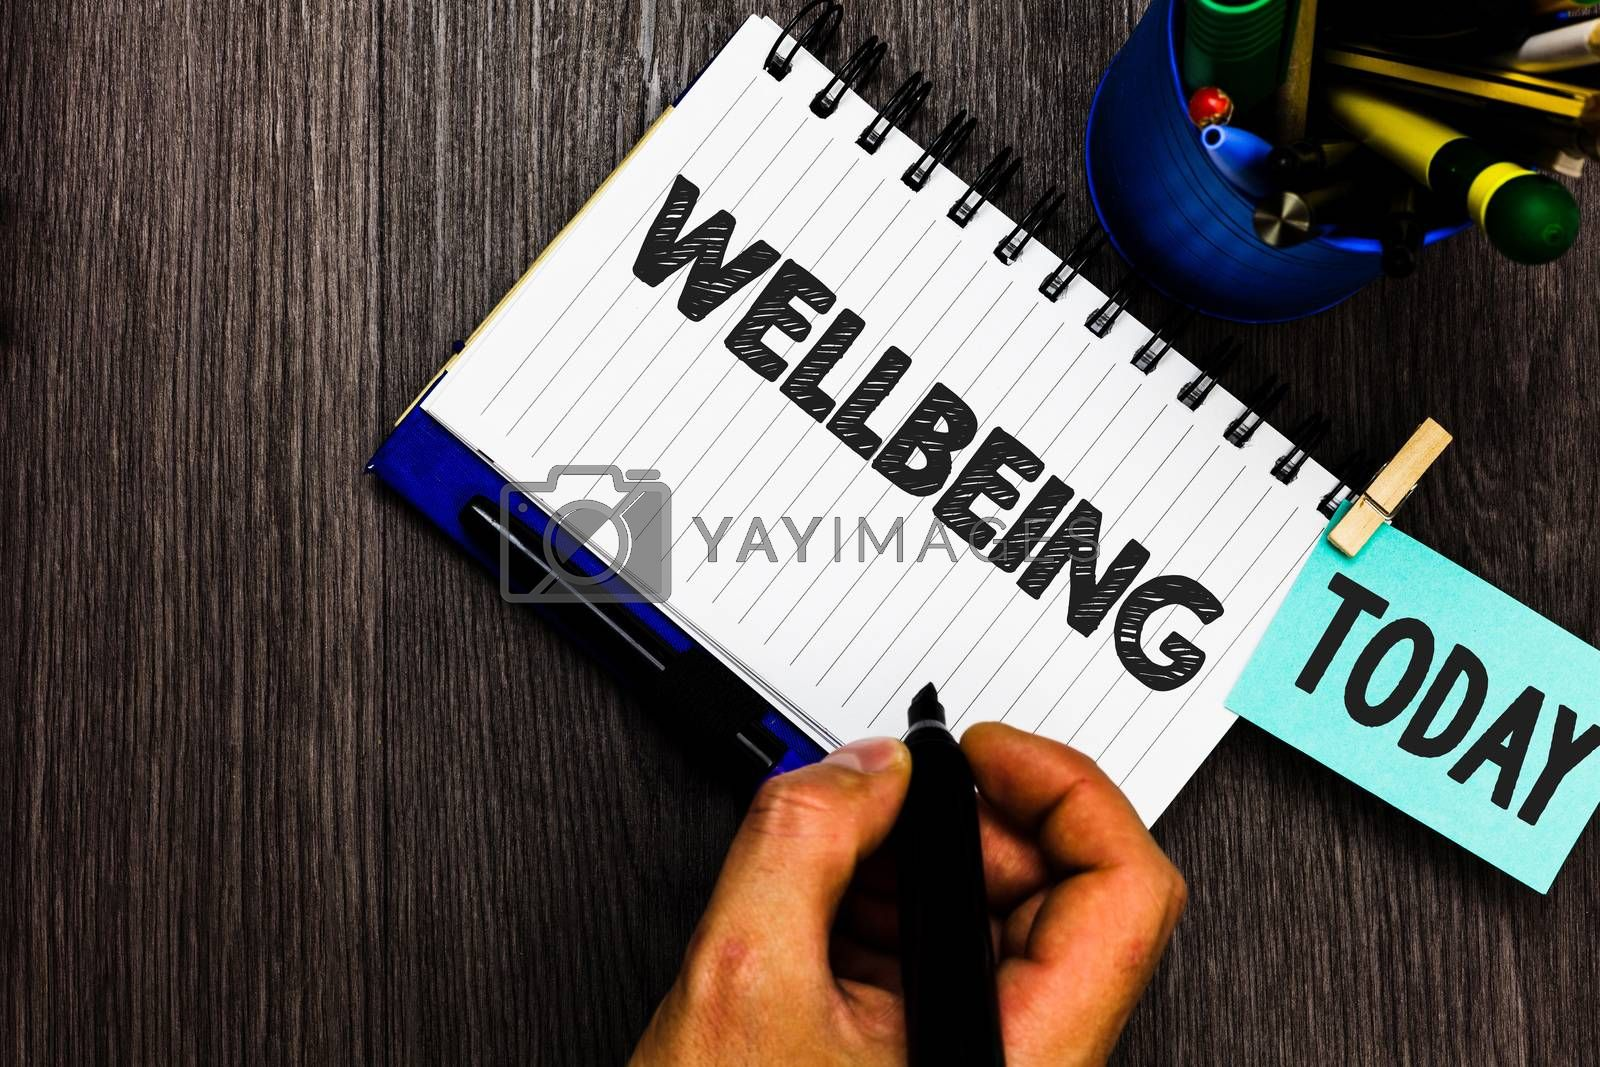 Text sign showing Wellbeing. Conceptual photo Healthy lifestyle conditions of people life work balance Reminder appointment daily work pens penholder clip paperclip papers. by Artur Szczybylo